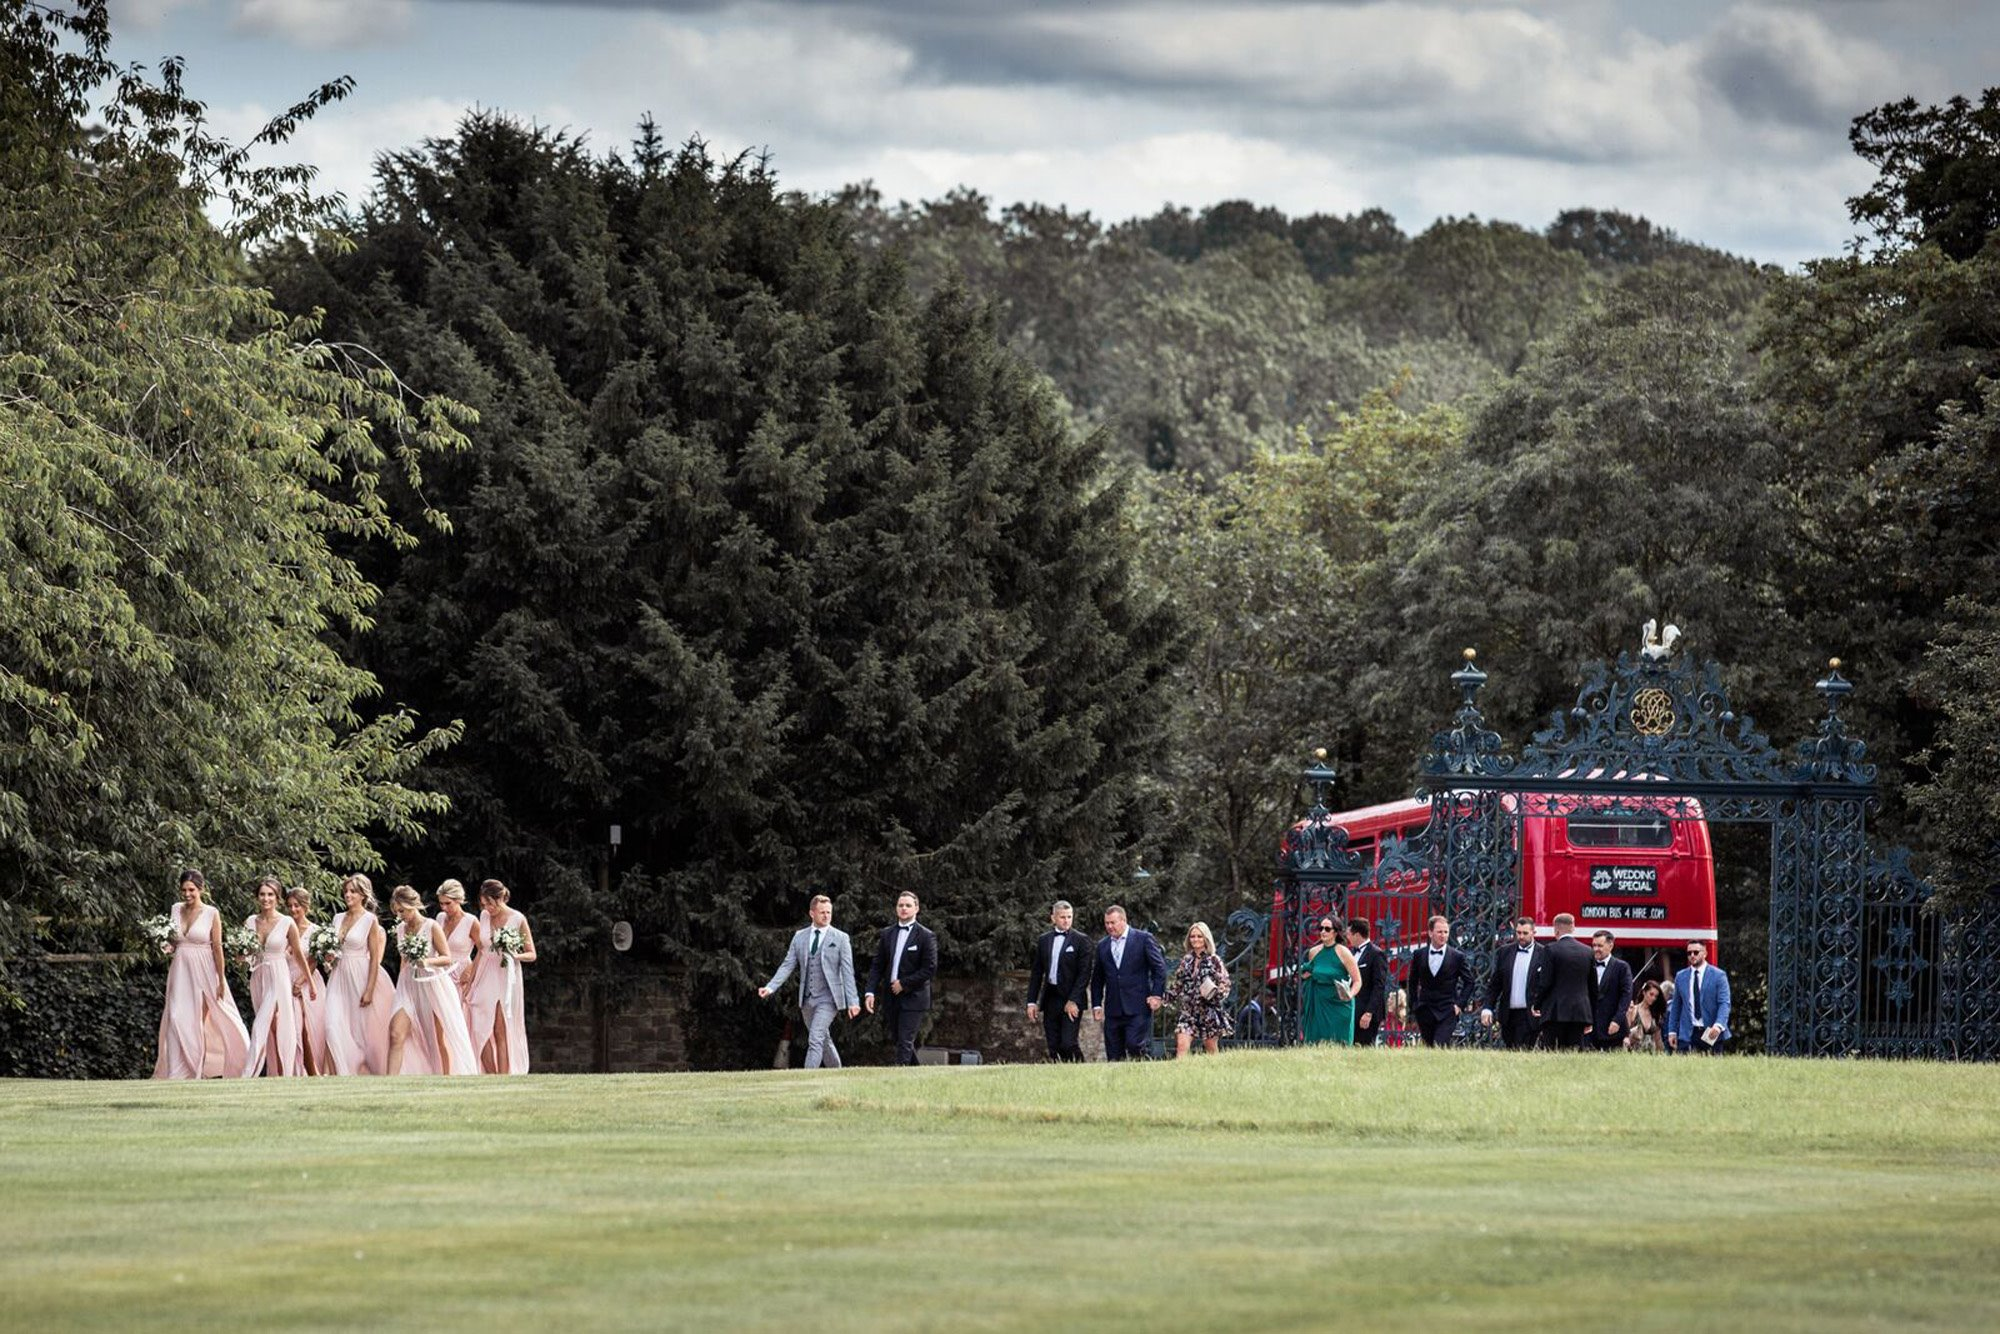 Bridal party get off an Old Double decker bus at the gates of Elmore Court